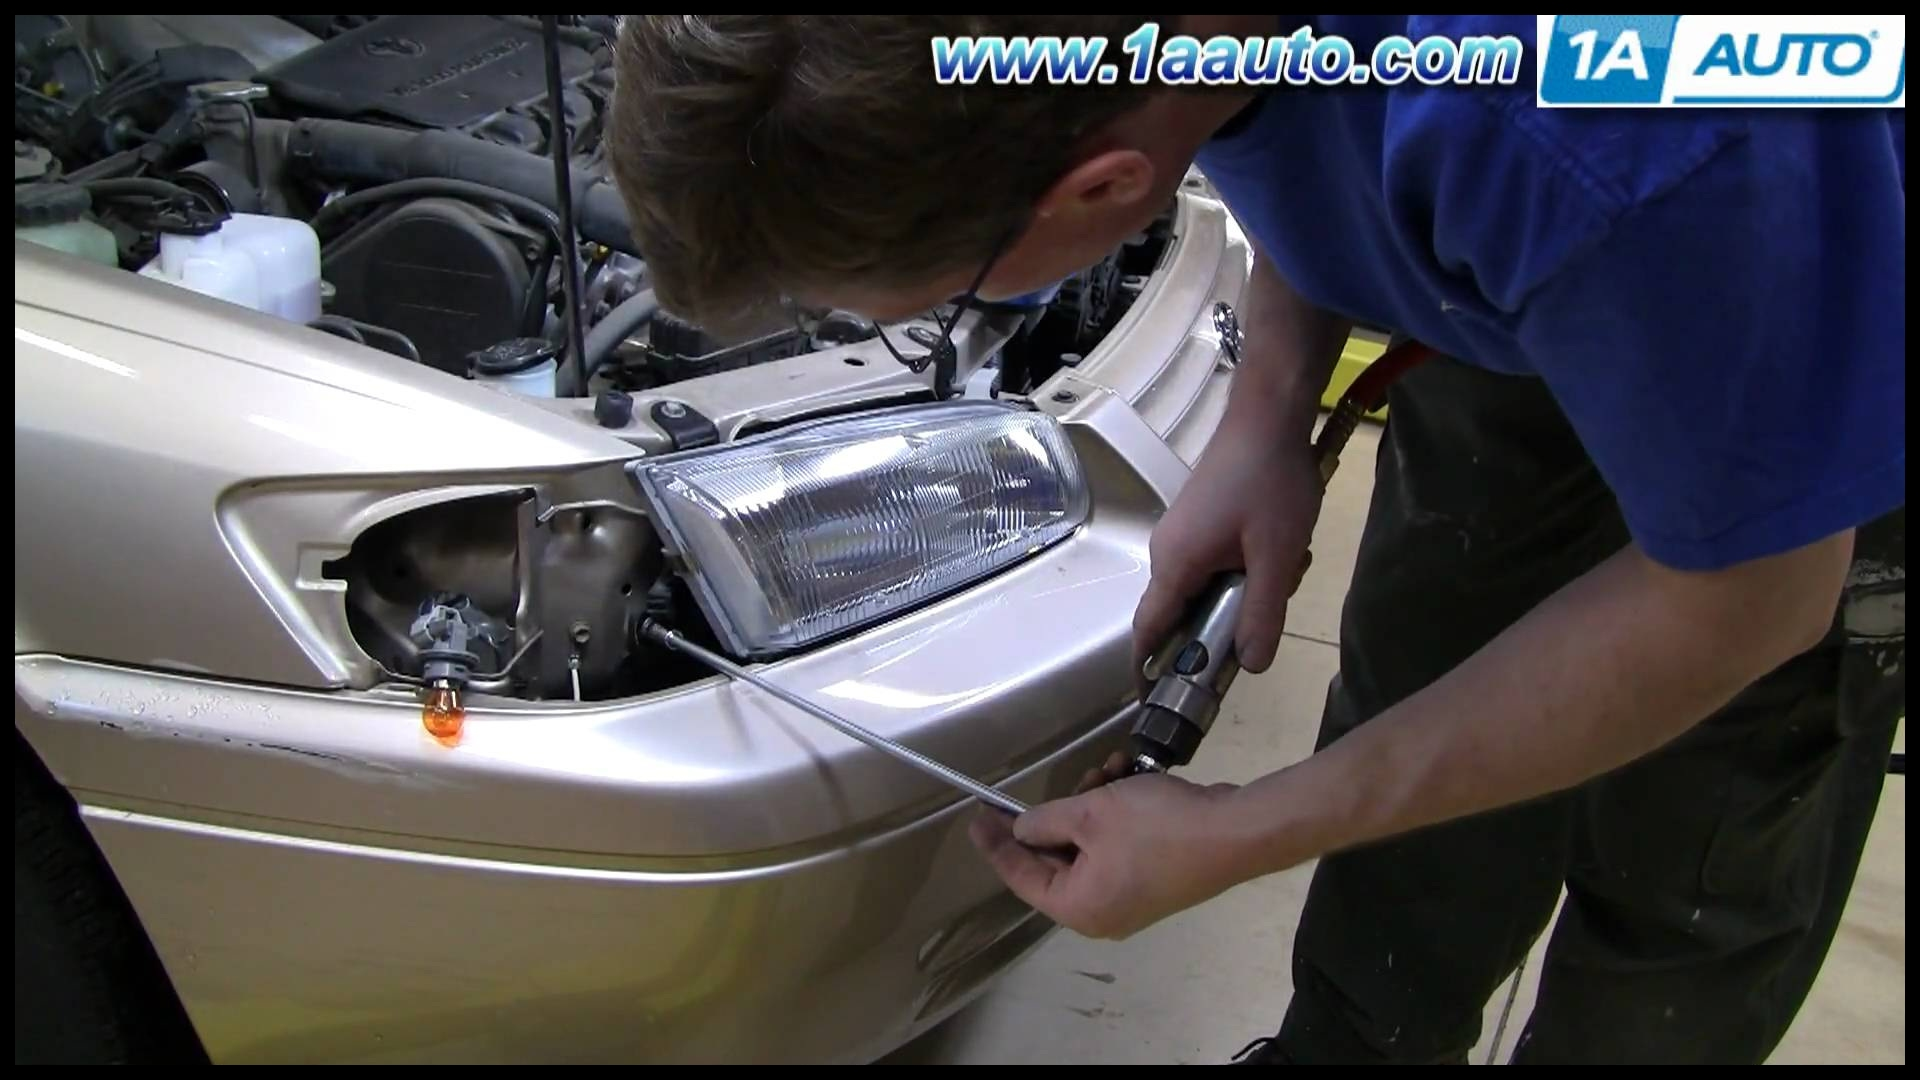 Hot News How to Install Replace Headlight toyota Camry 97 01 1aauto Picture